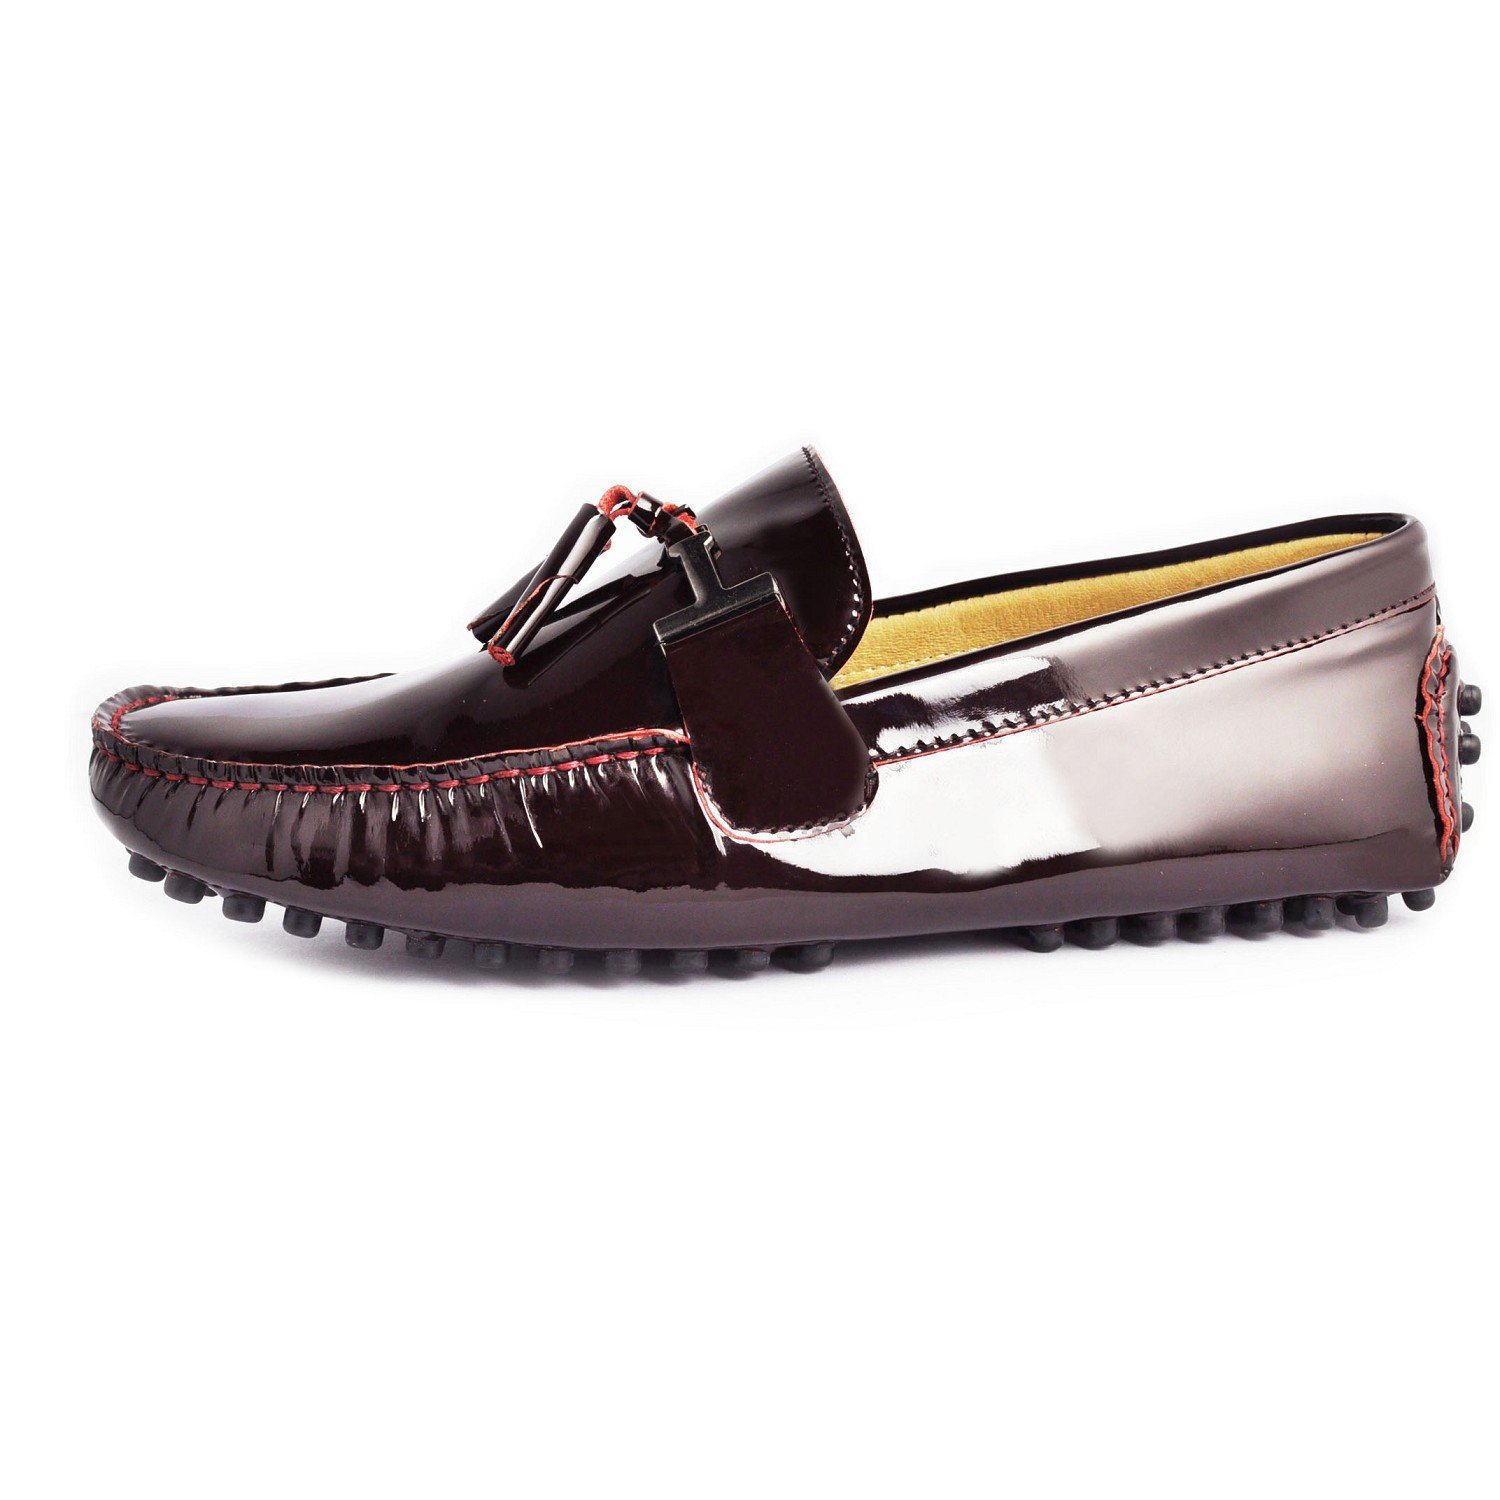 f938f2d3a8c3d Fulinken New Patent Leather Men Tassel Slip on Loafers Casual Shoes Diving  Shoes Dress Shoe (8, Burgundy): Amazon.ca: Shoes & Handbags